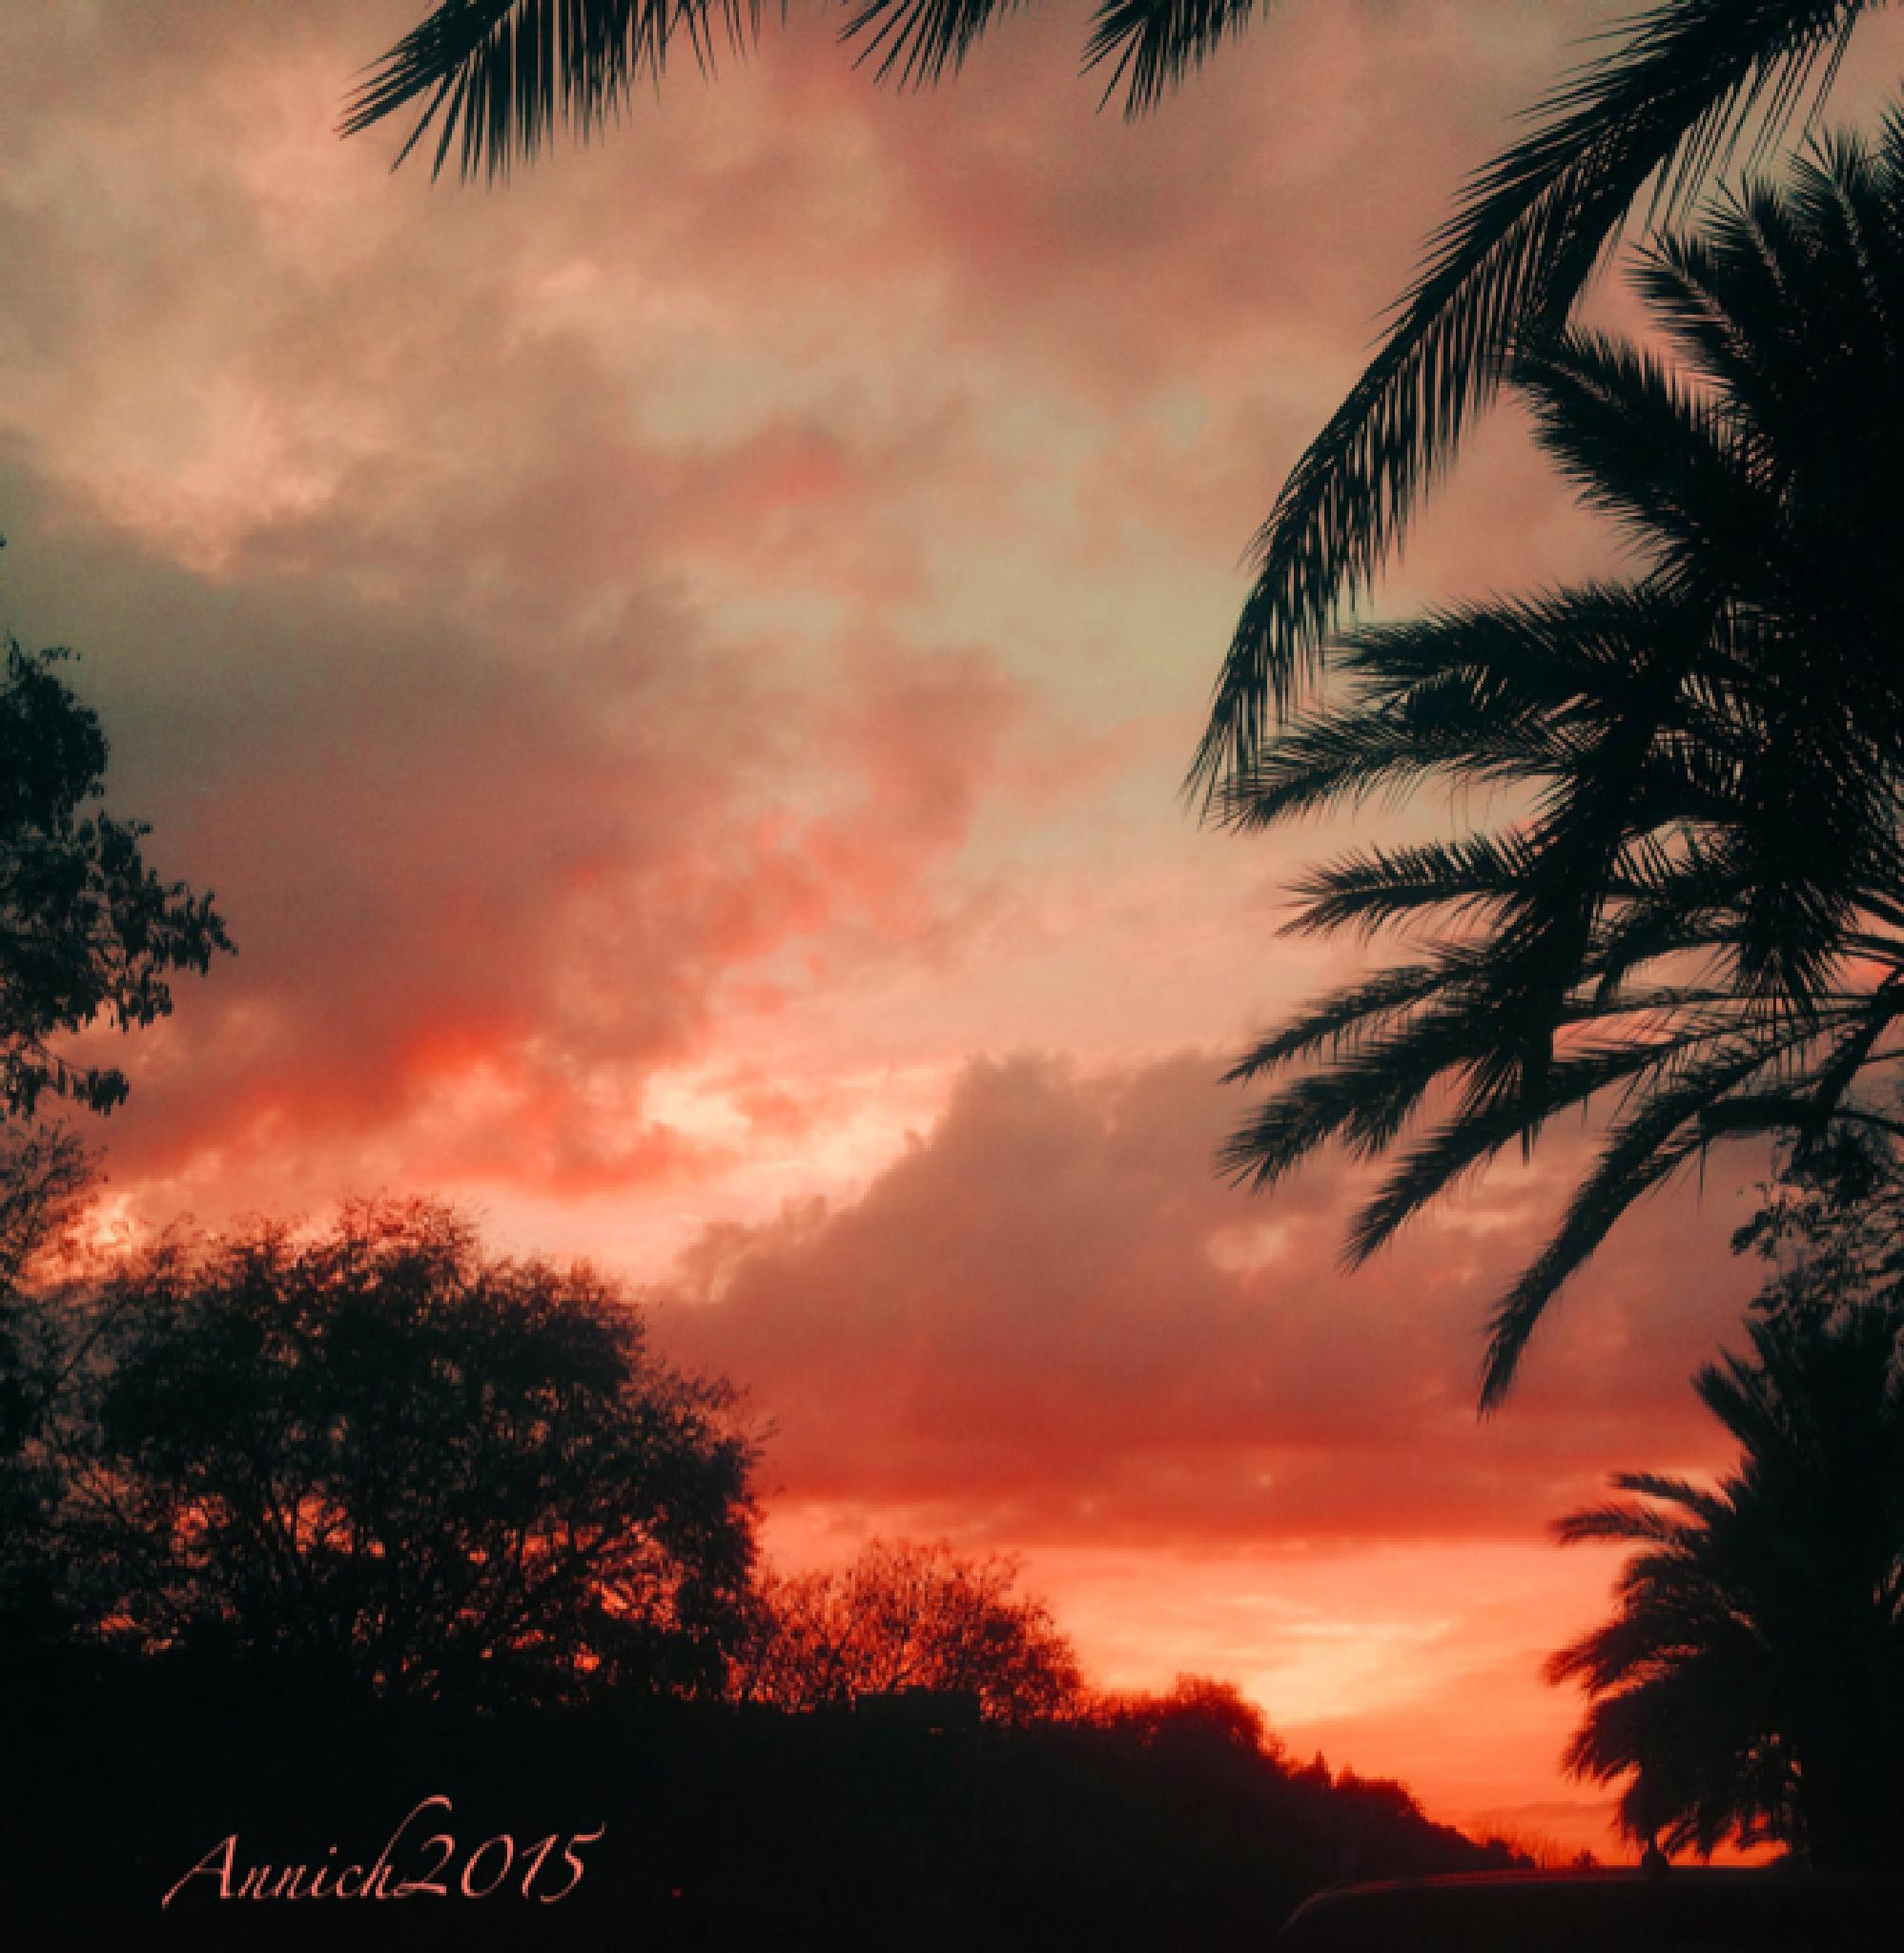 IMG_6795 by Annich